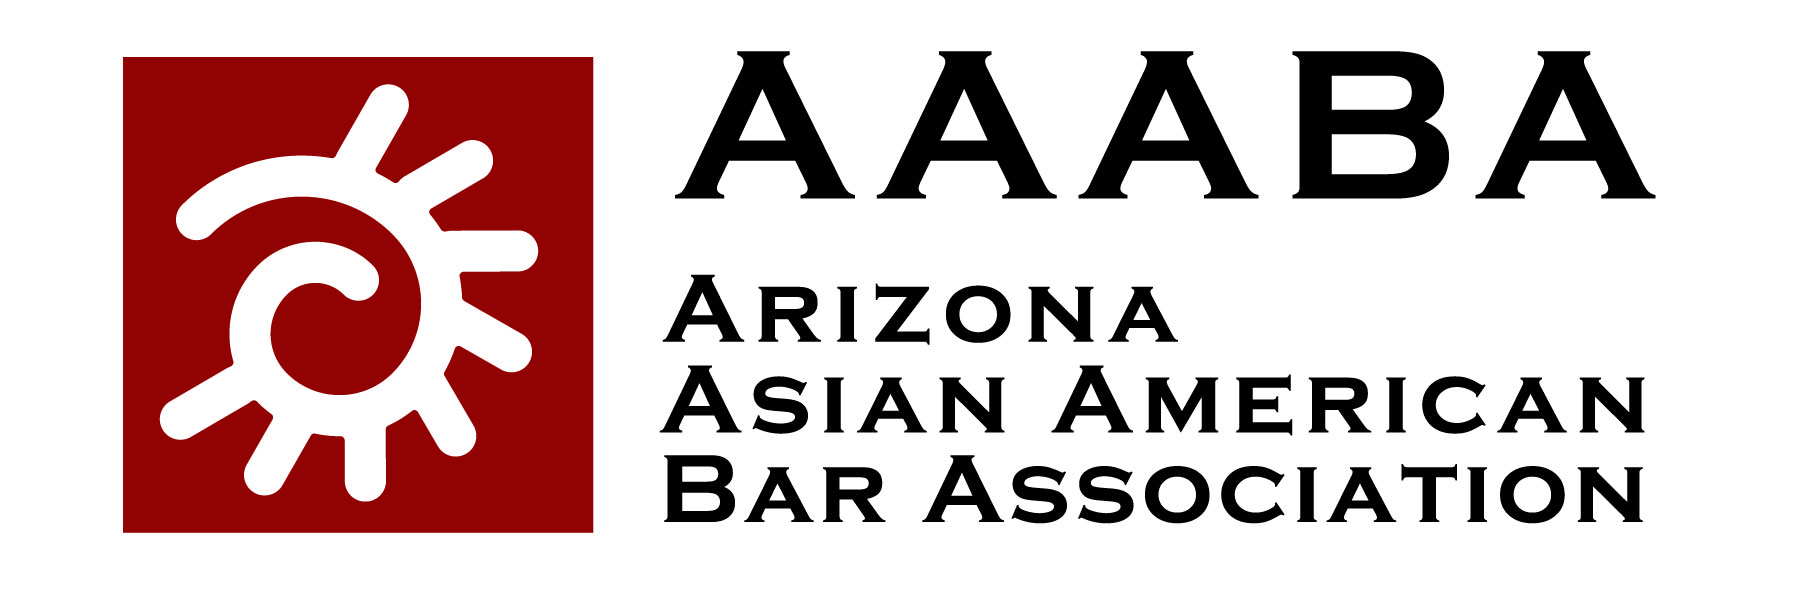 Arizona Asian American Bar Association 18